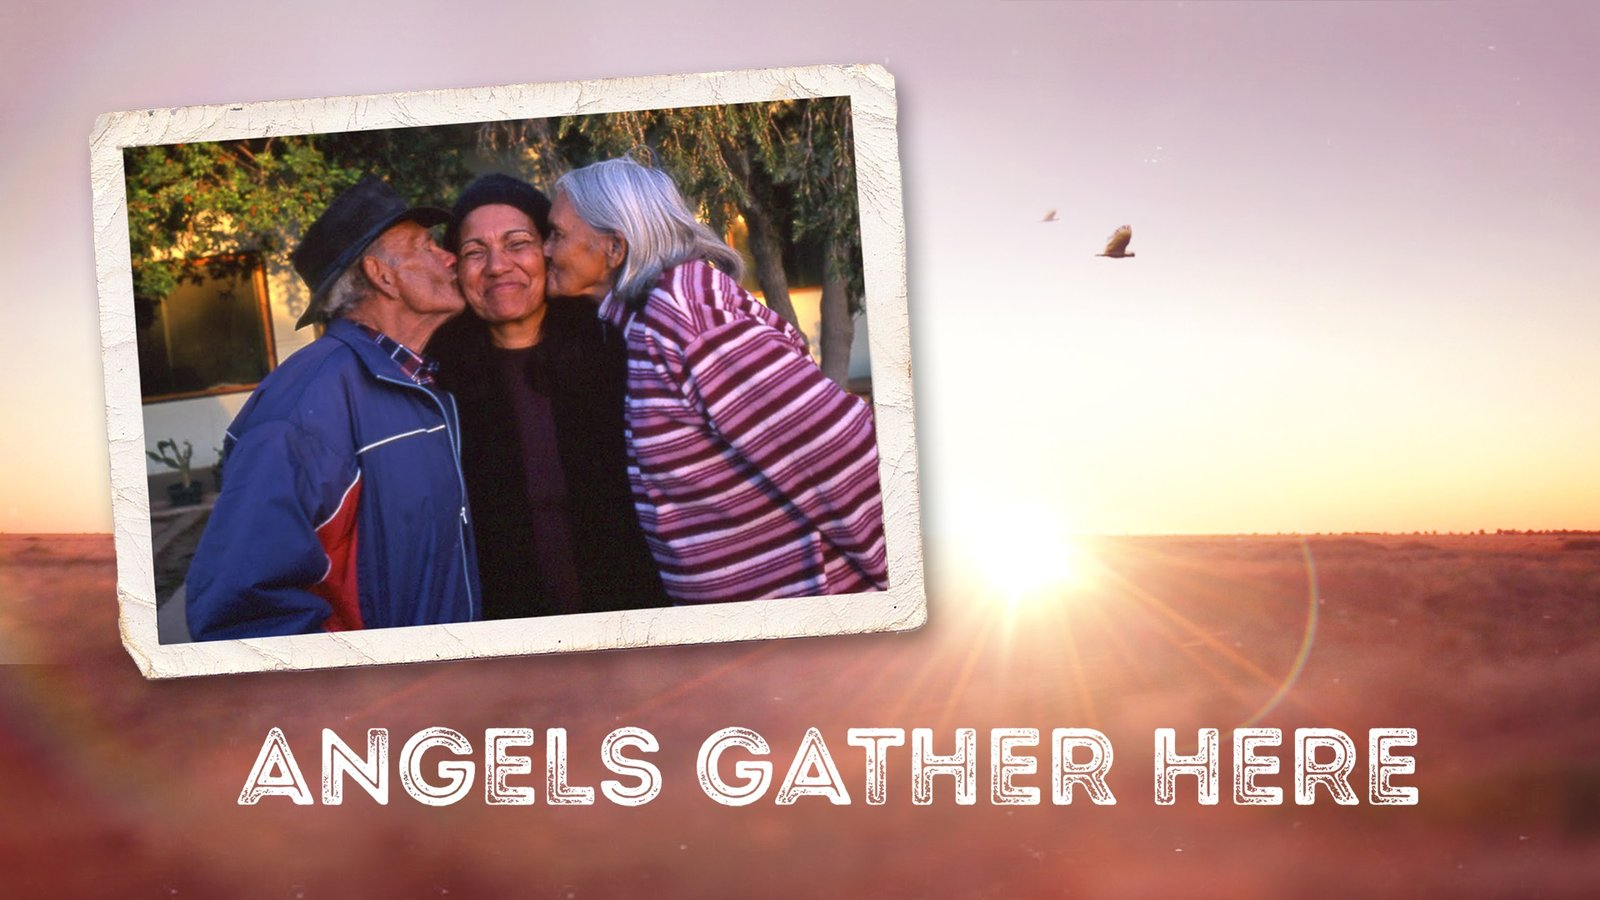 Angels Gather Here - One Woman Reflects on Her Aboriginal Identity